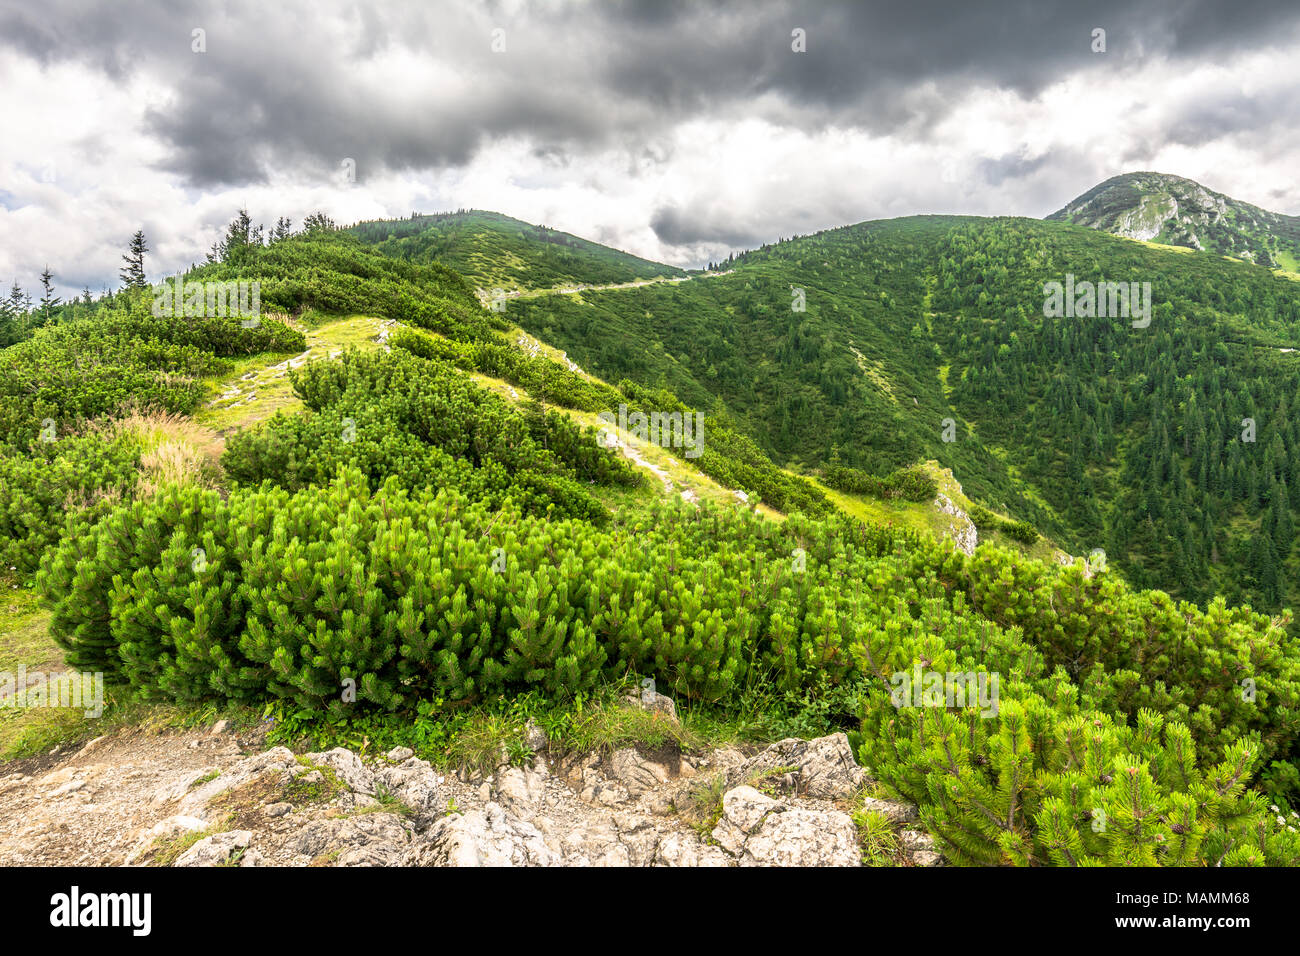 Green mountains landscape, hills covered forest Stock Photo